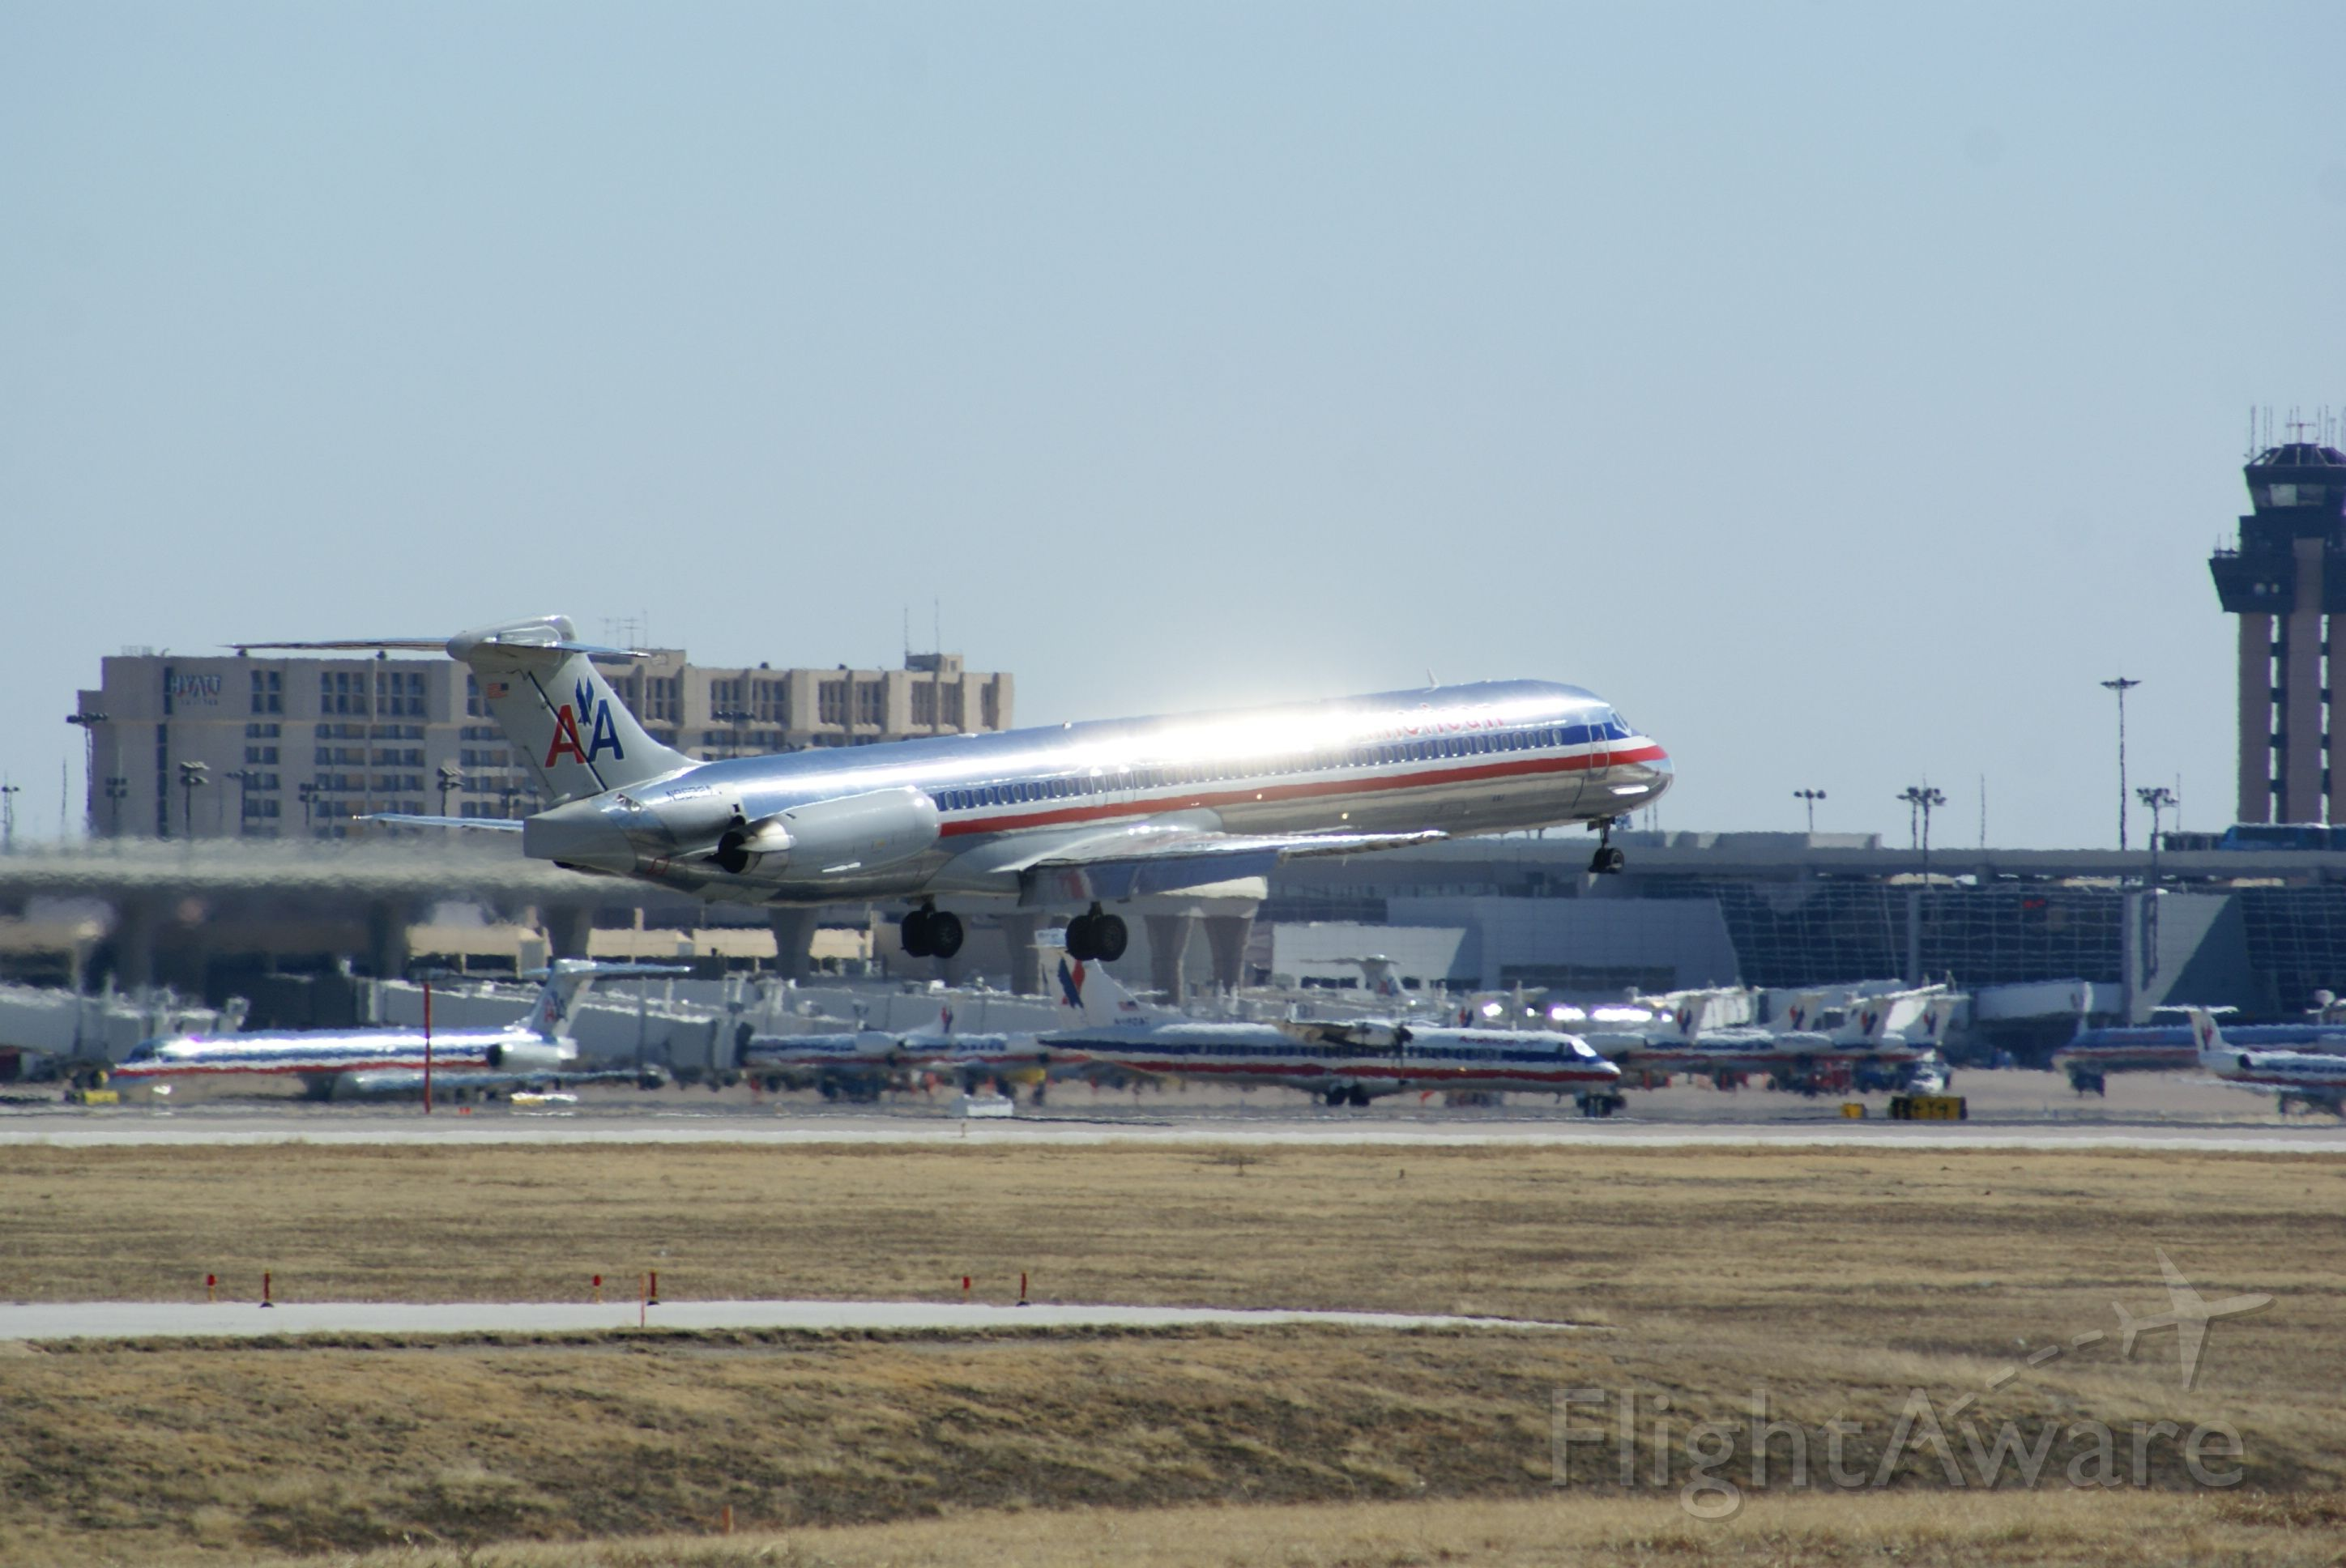 McDonnell Douglas MD-80 — - American Airlines MD80 landing. Caught the shot as soon as the sun reflected off of the plane.